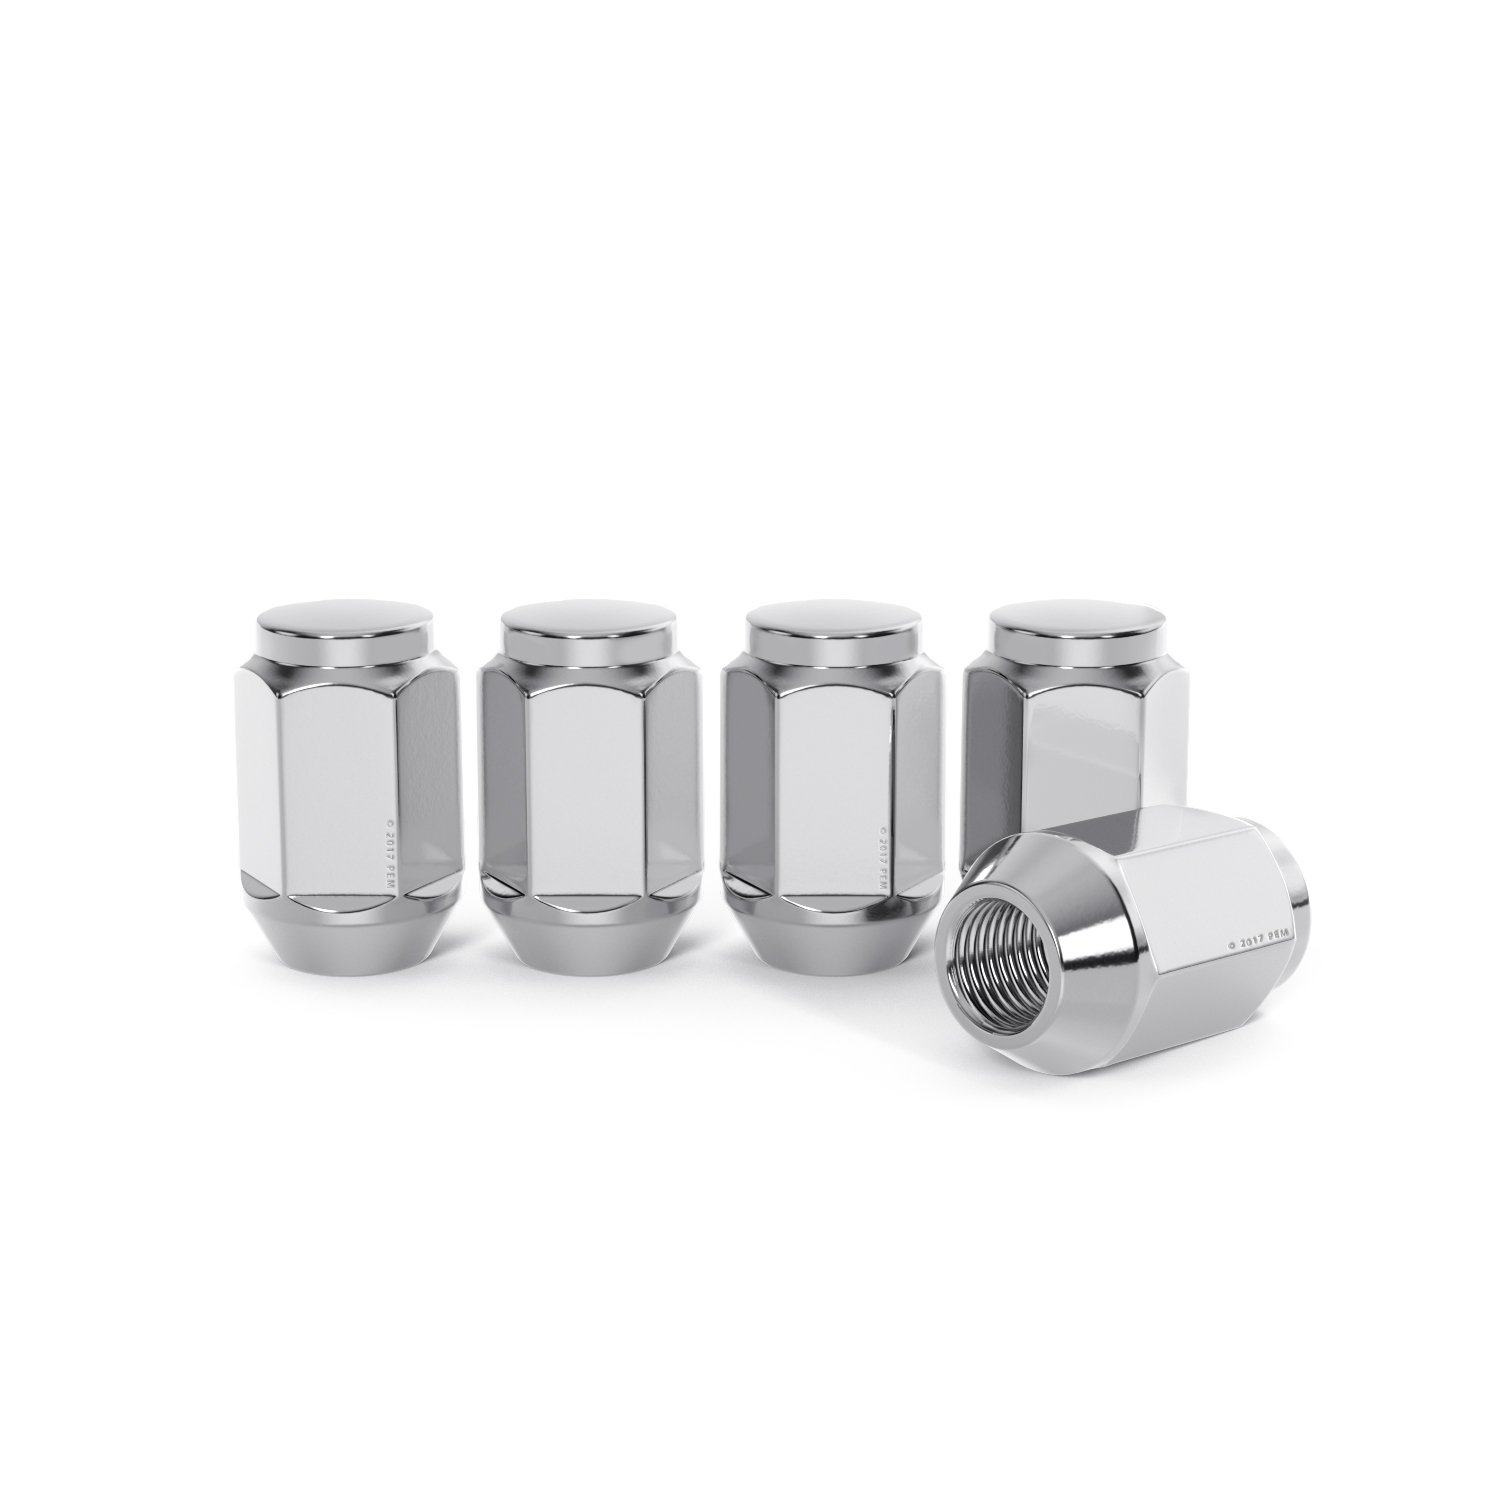 Metric 12x1.5 Threads Conical Cone Taper Acorn Seat Closed End Installs with 19mm or 3//4 Hex Socket Precision European Motorwerks StanceMagic 20pc Silver//Chrome Bulge Lug Nuts 1.4 Length